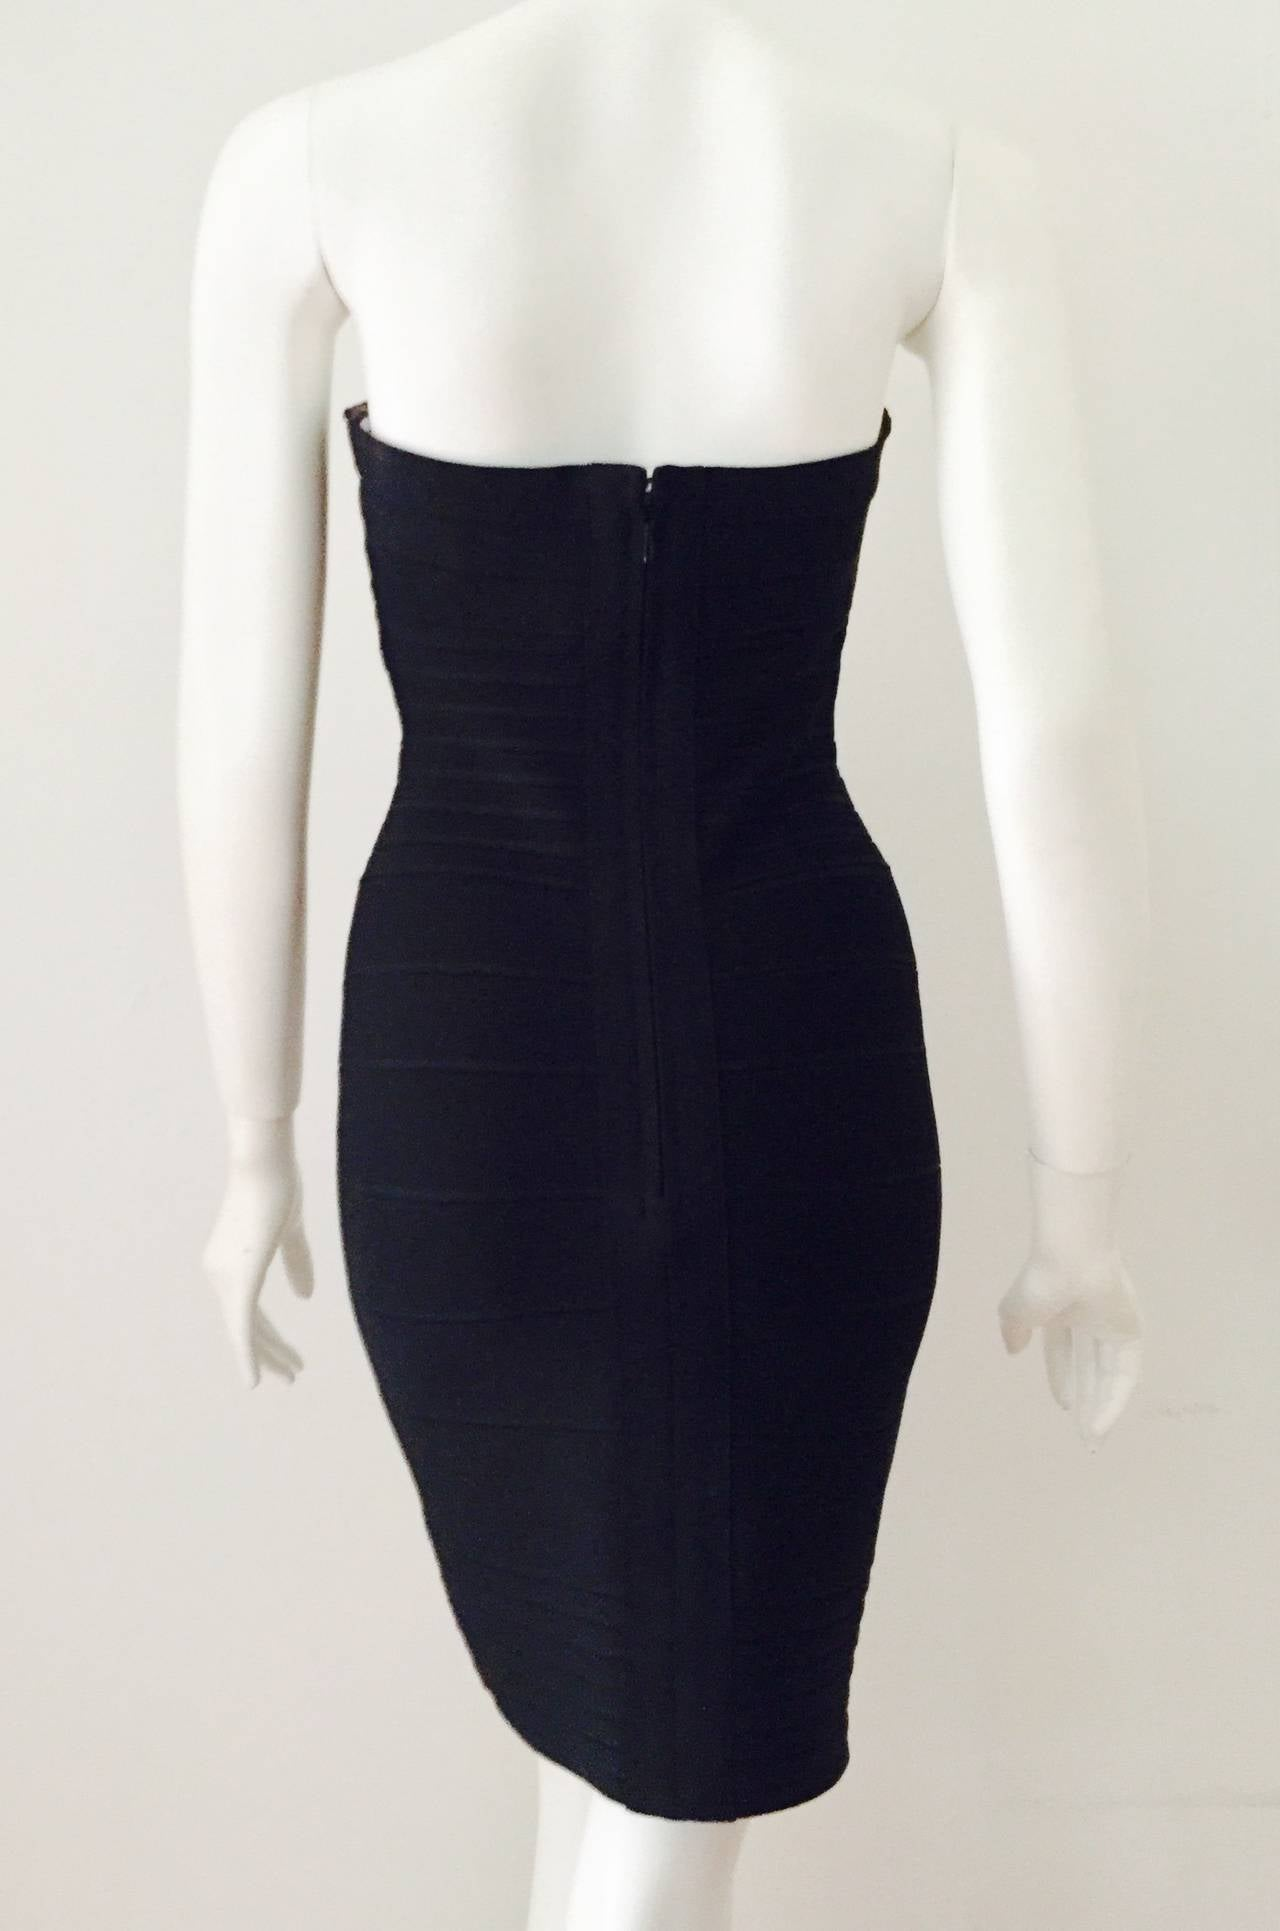 Iconic Herve Leger Bandage Strapless Dress 3